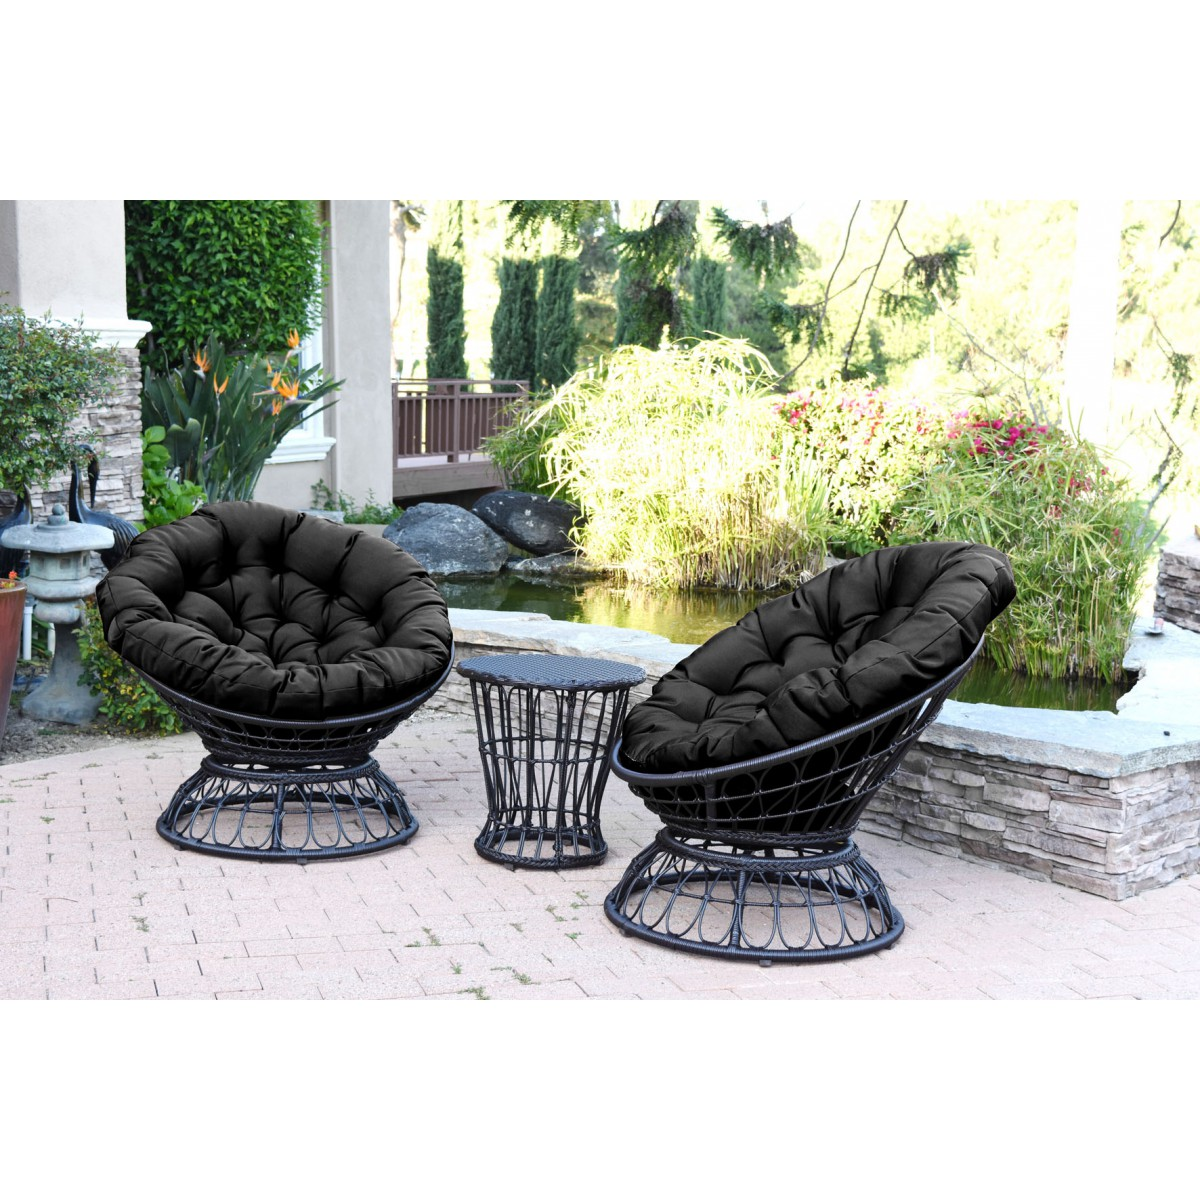 Groovy Papasan Espresso Wicker Swivel Chair And Table Set With Black Cushions Evergreenethics Interior Chair Design Evergreenethicsorg